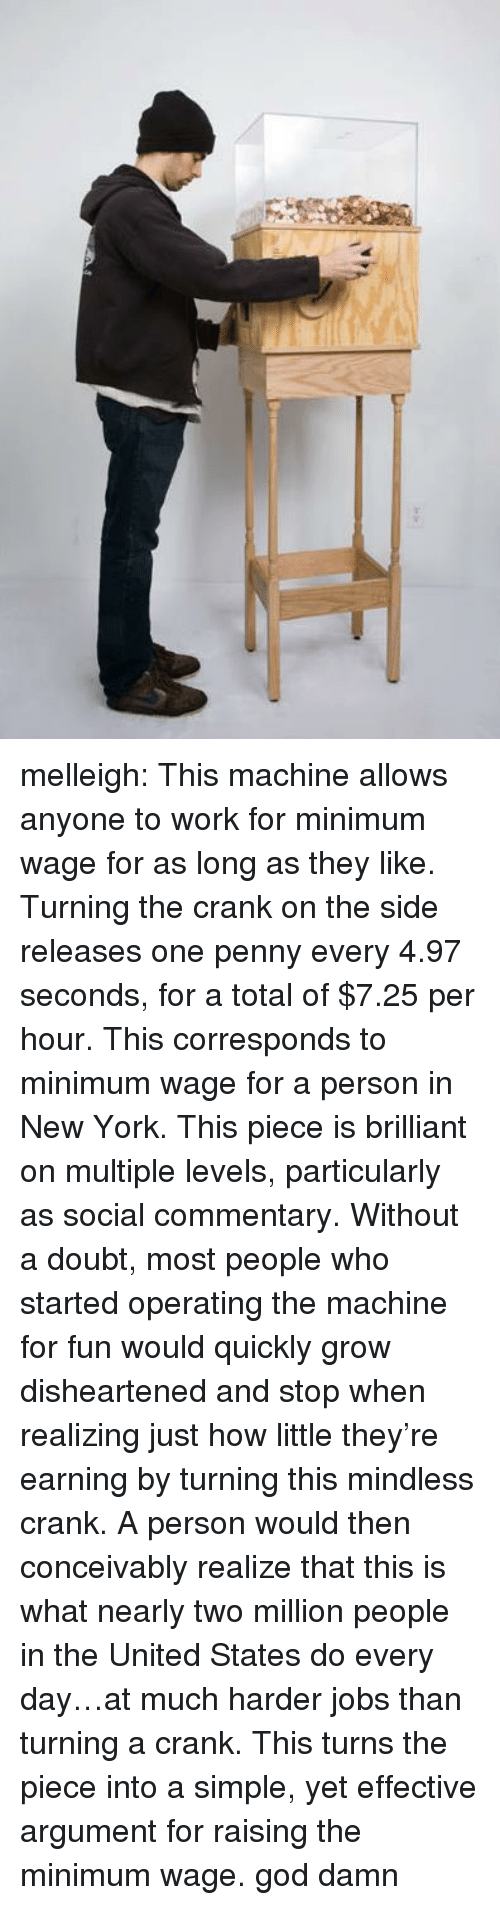 Commentary: melleigh:   This machine allows anyone to work for minimum wage for as long as they like. Turning the crank on the side releases one penny every 4.97 seconds, for a total of $7.25 per hour. This corresponds to minimum wage for a person in New York. This piece is brilliant on multiple levels, particularly as social commentary. Without a doubt, most people who started operating the machine for fun would quicklygrow disheartened and stop when realizing just how little they're earning by turning this mindless crank. A person would then conceivably realize that this is what nearly two million people in the United States do every day…at much harder jobs than turning a crank. This turns the piece into a simple, yet effective argument for raising the minimum wage.  god damn